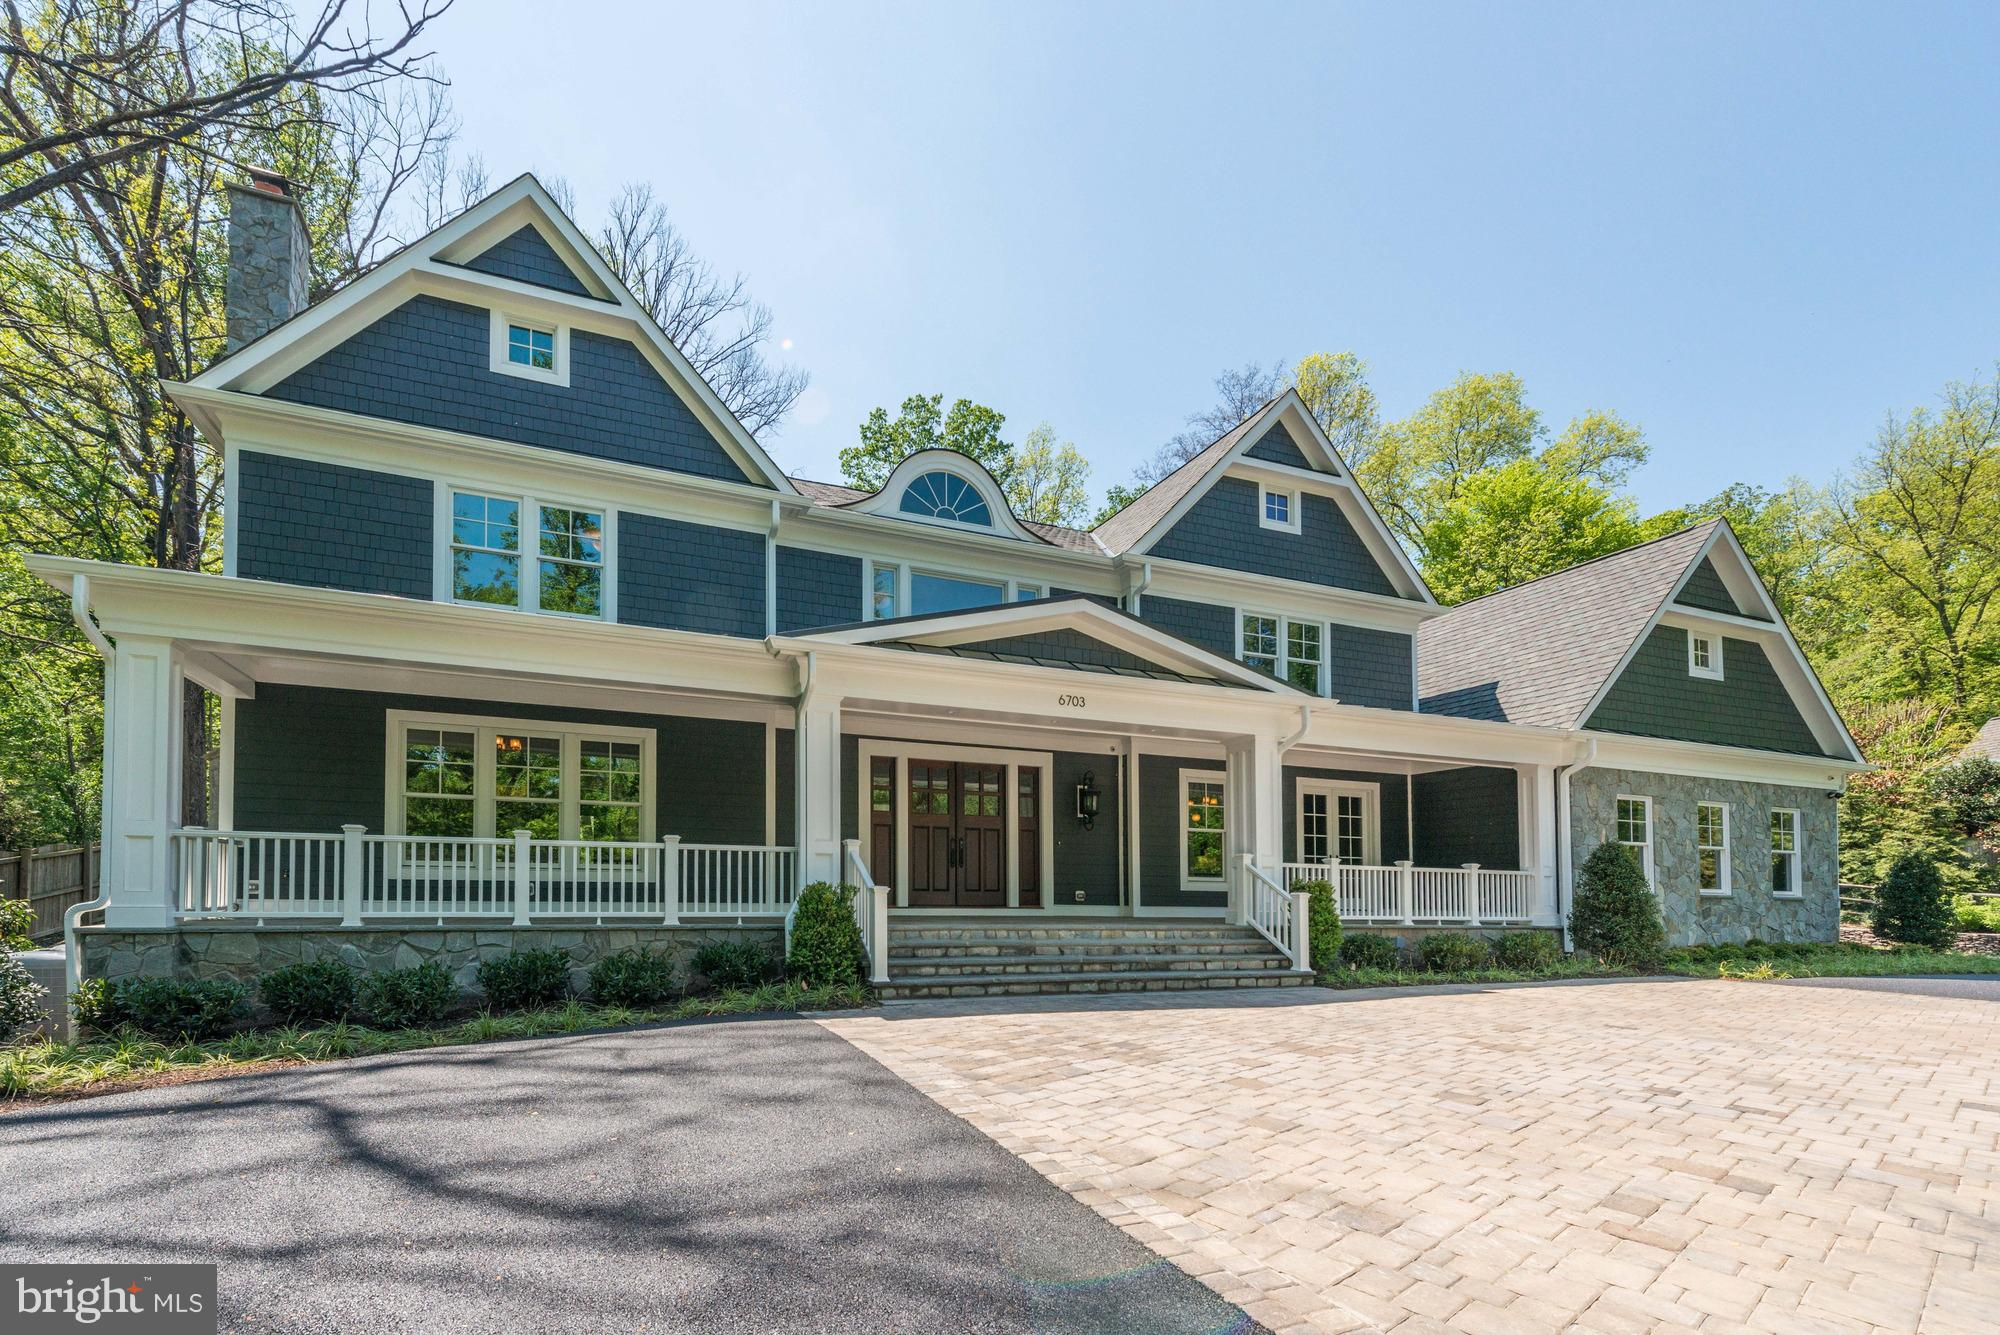 893 GEORGETOWN RIDGE COURT, MCLEAN, VA 22102